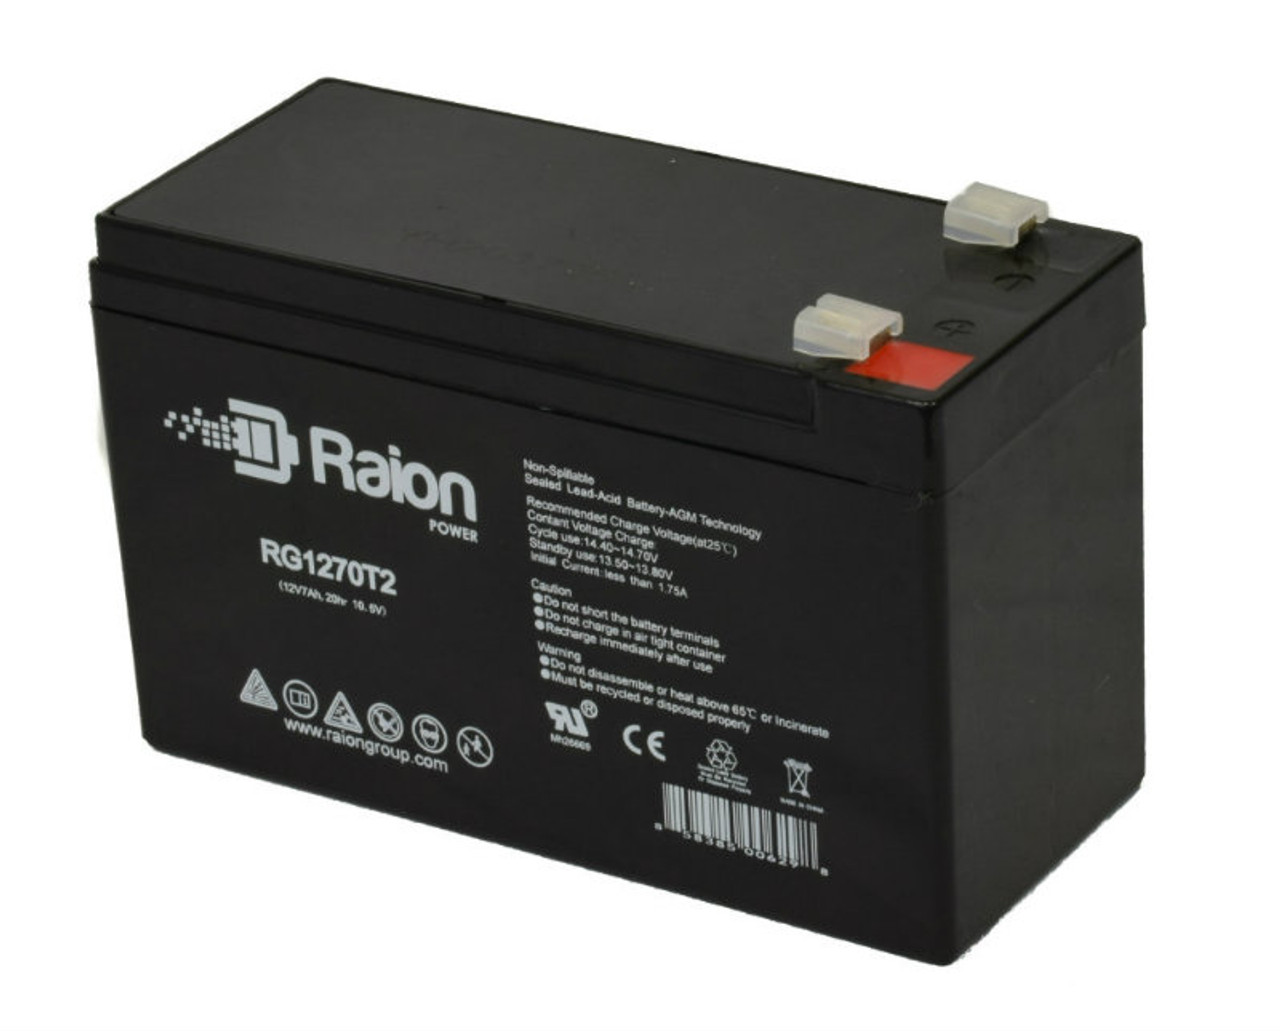 Raion Power 12V 7Ah SLA Battery With T1 Terminals For National Power GT026P4-F1